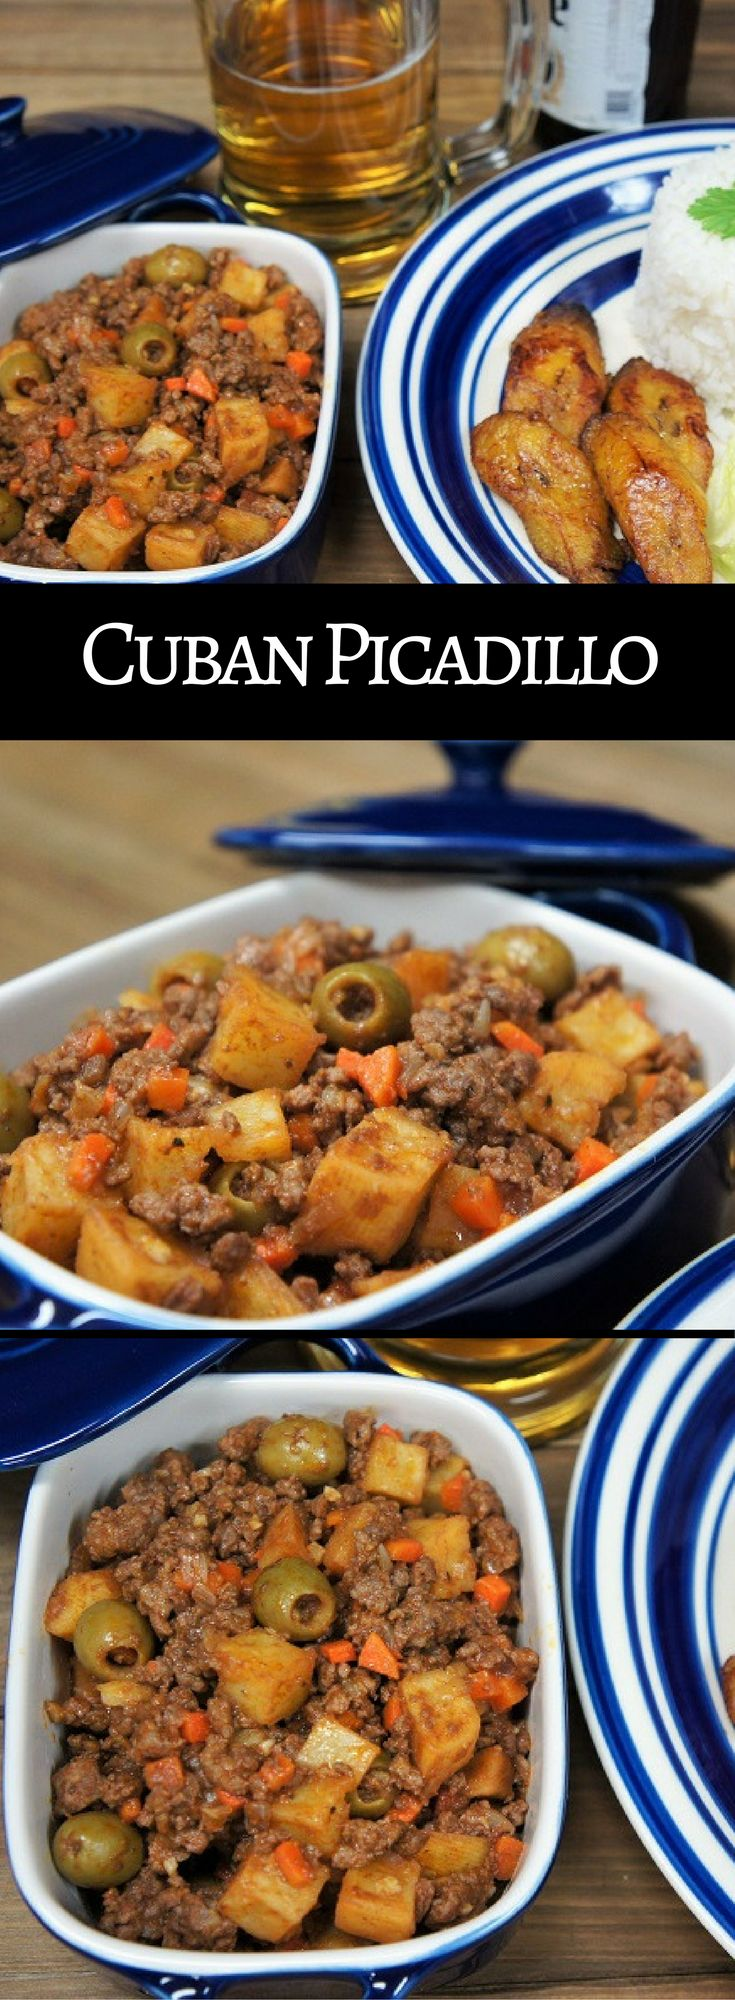 Cuban Picadillo is perfect comfort food. It's really easy to make too, and doesn't take all that long, so it's perfect for weeknight meals. In this recipe we go all out with fried potatoes, veggies, spices and salty olives cooked with lean ground beef and tomato sauce. The picadillo is served with white rice for a traditional Cuban dinner.